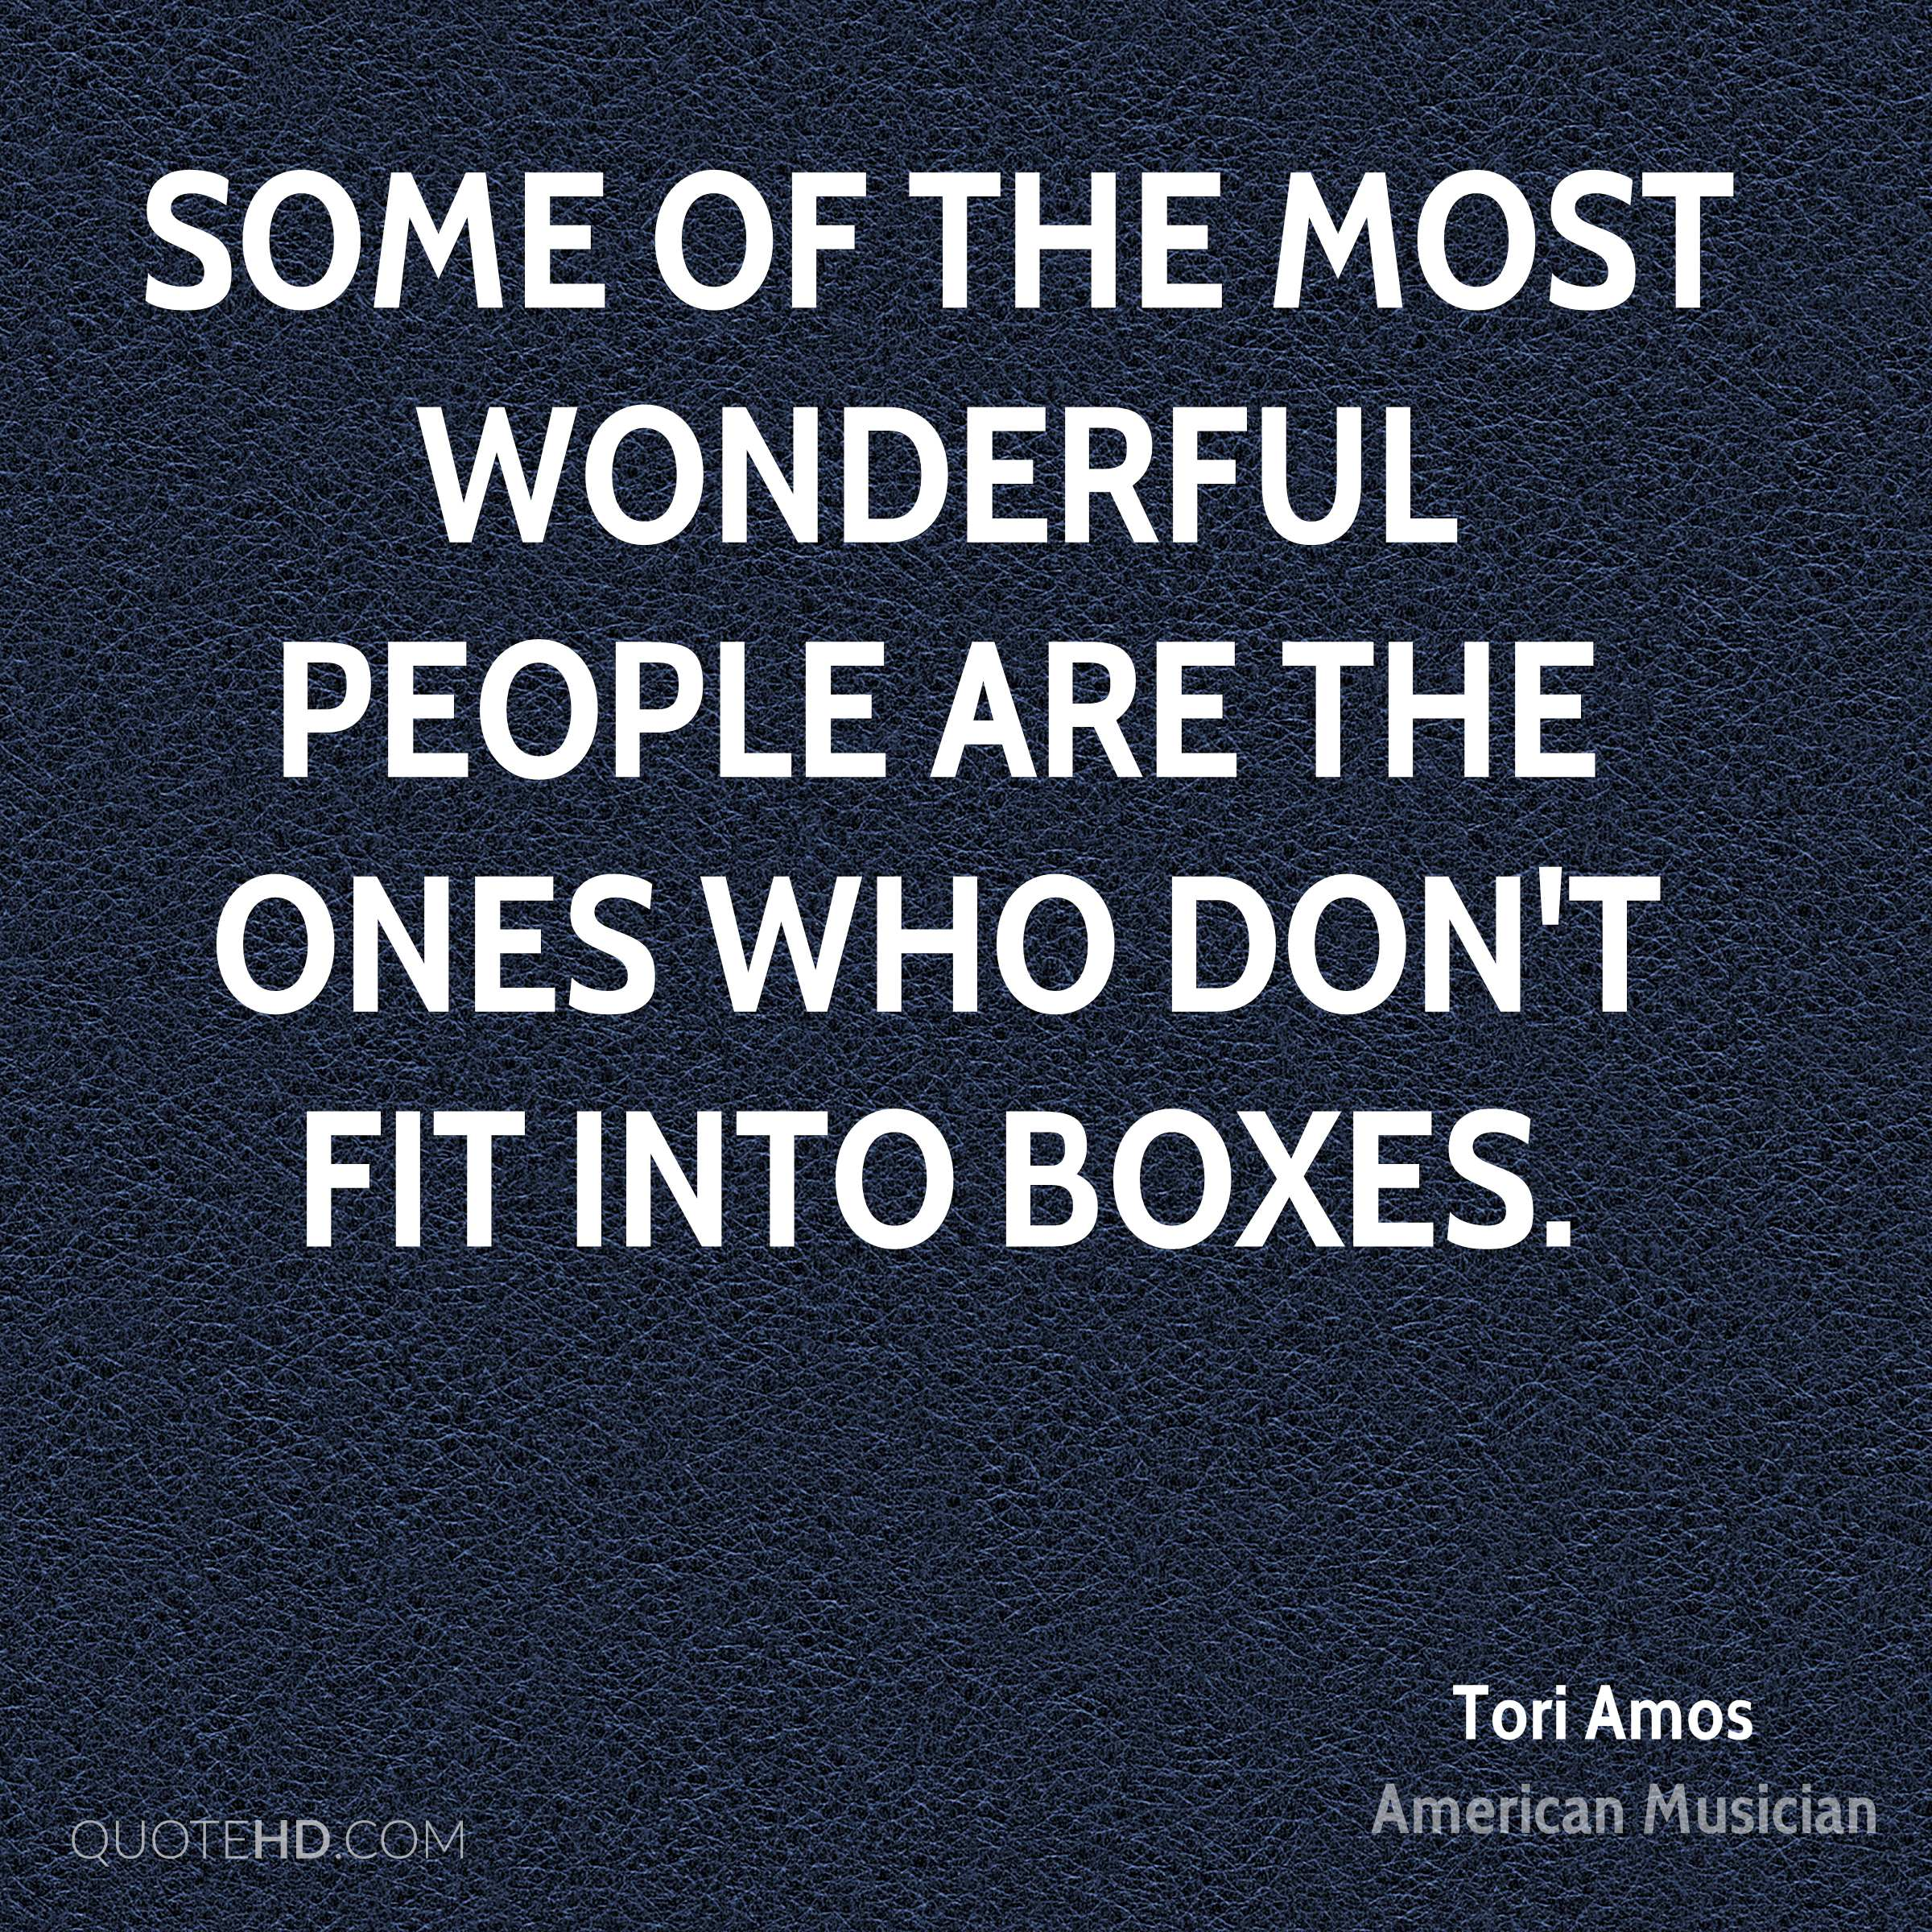 Some of the most wonderful people are the ones who don't fit into boxes.